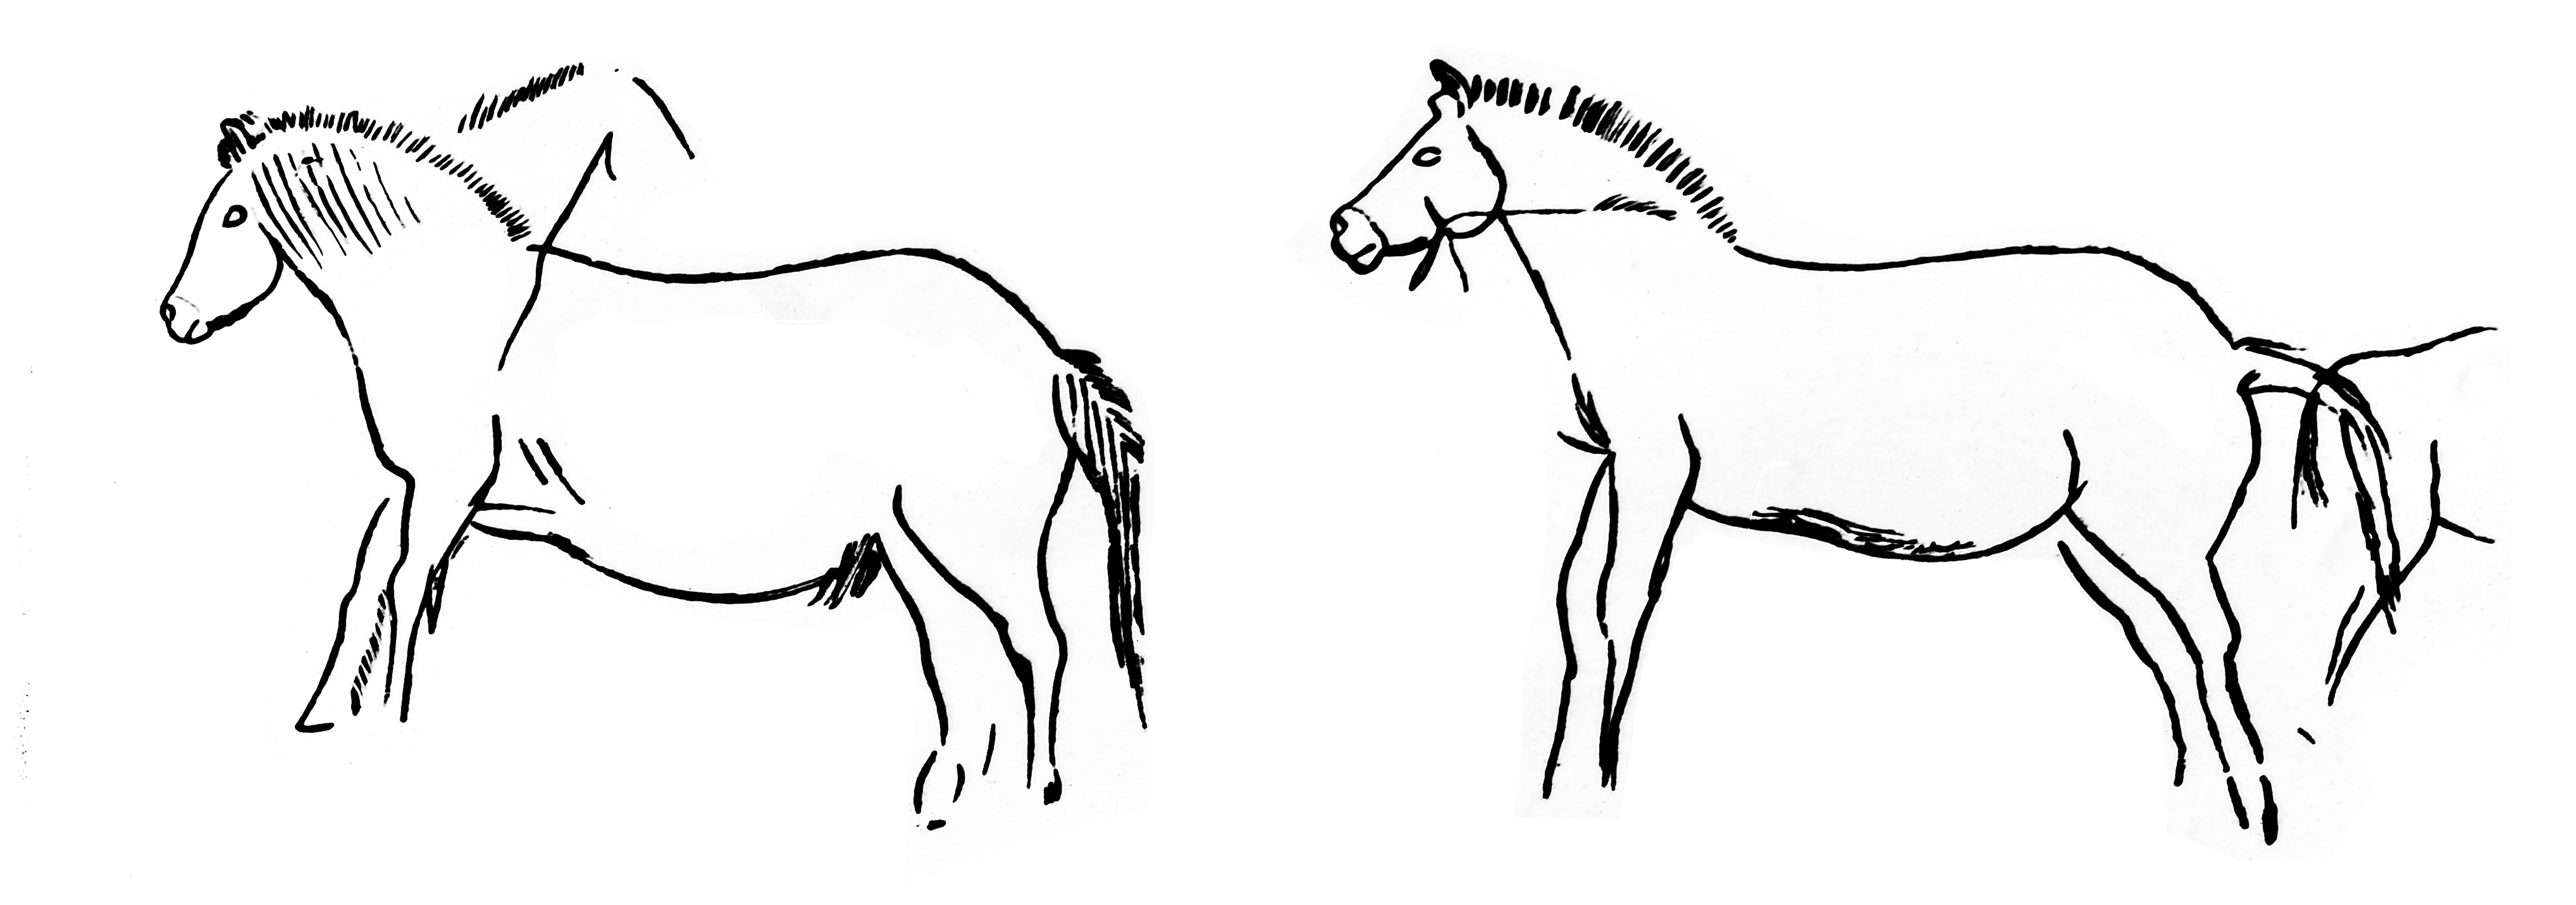 File Two Horses Upper Palaeolithic From Line Drawing By Breuil Wellcome M0015295 Jpg Wikimedia Commons